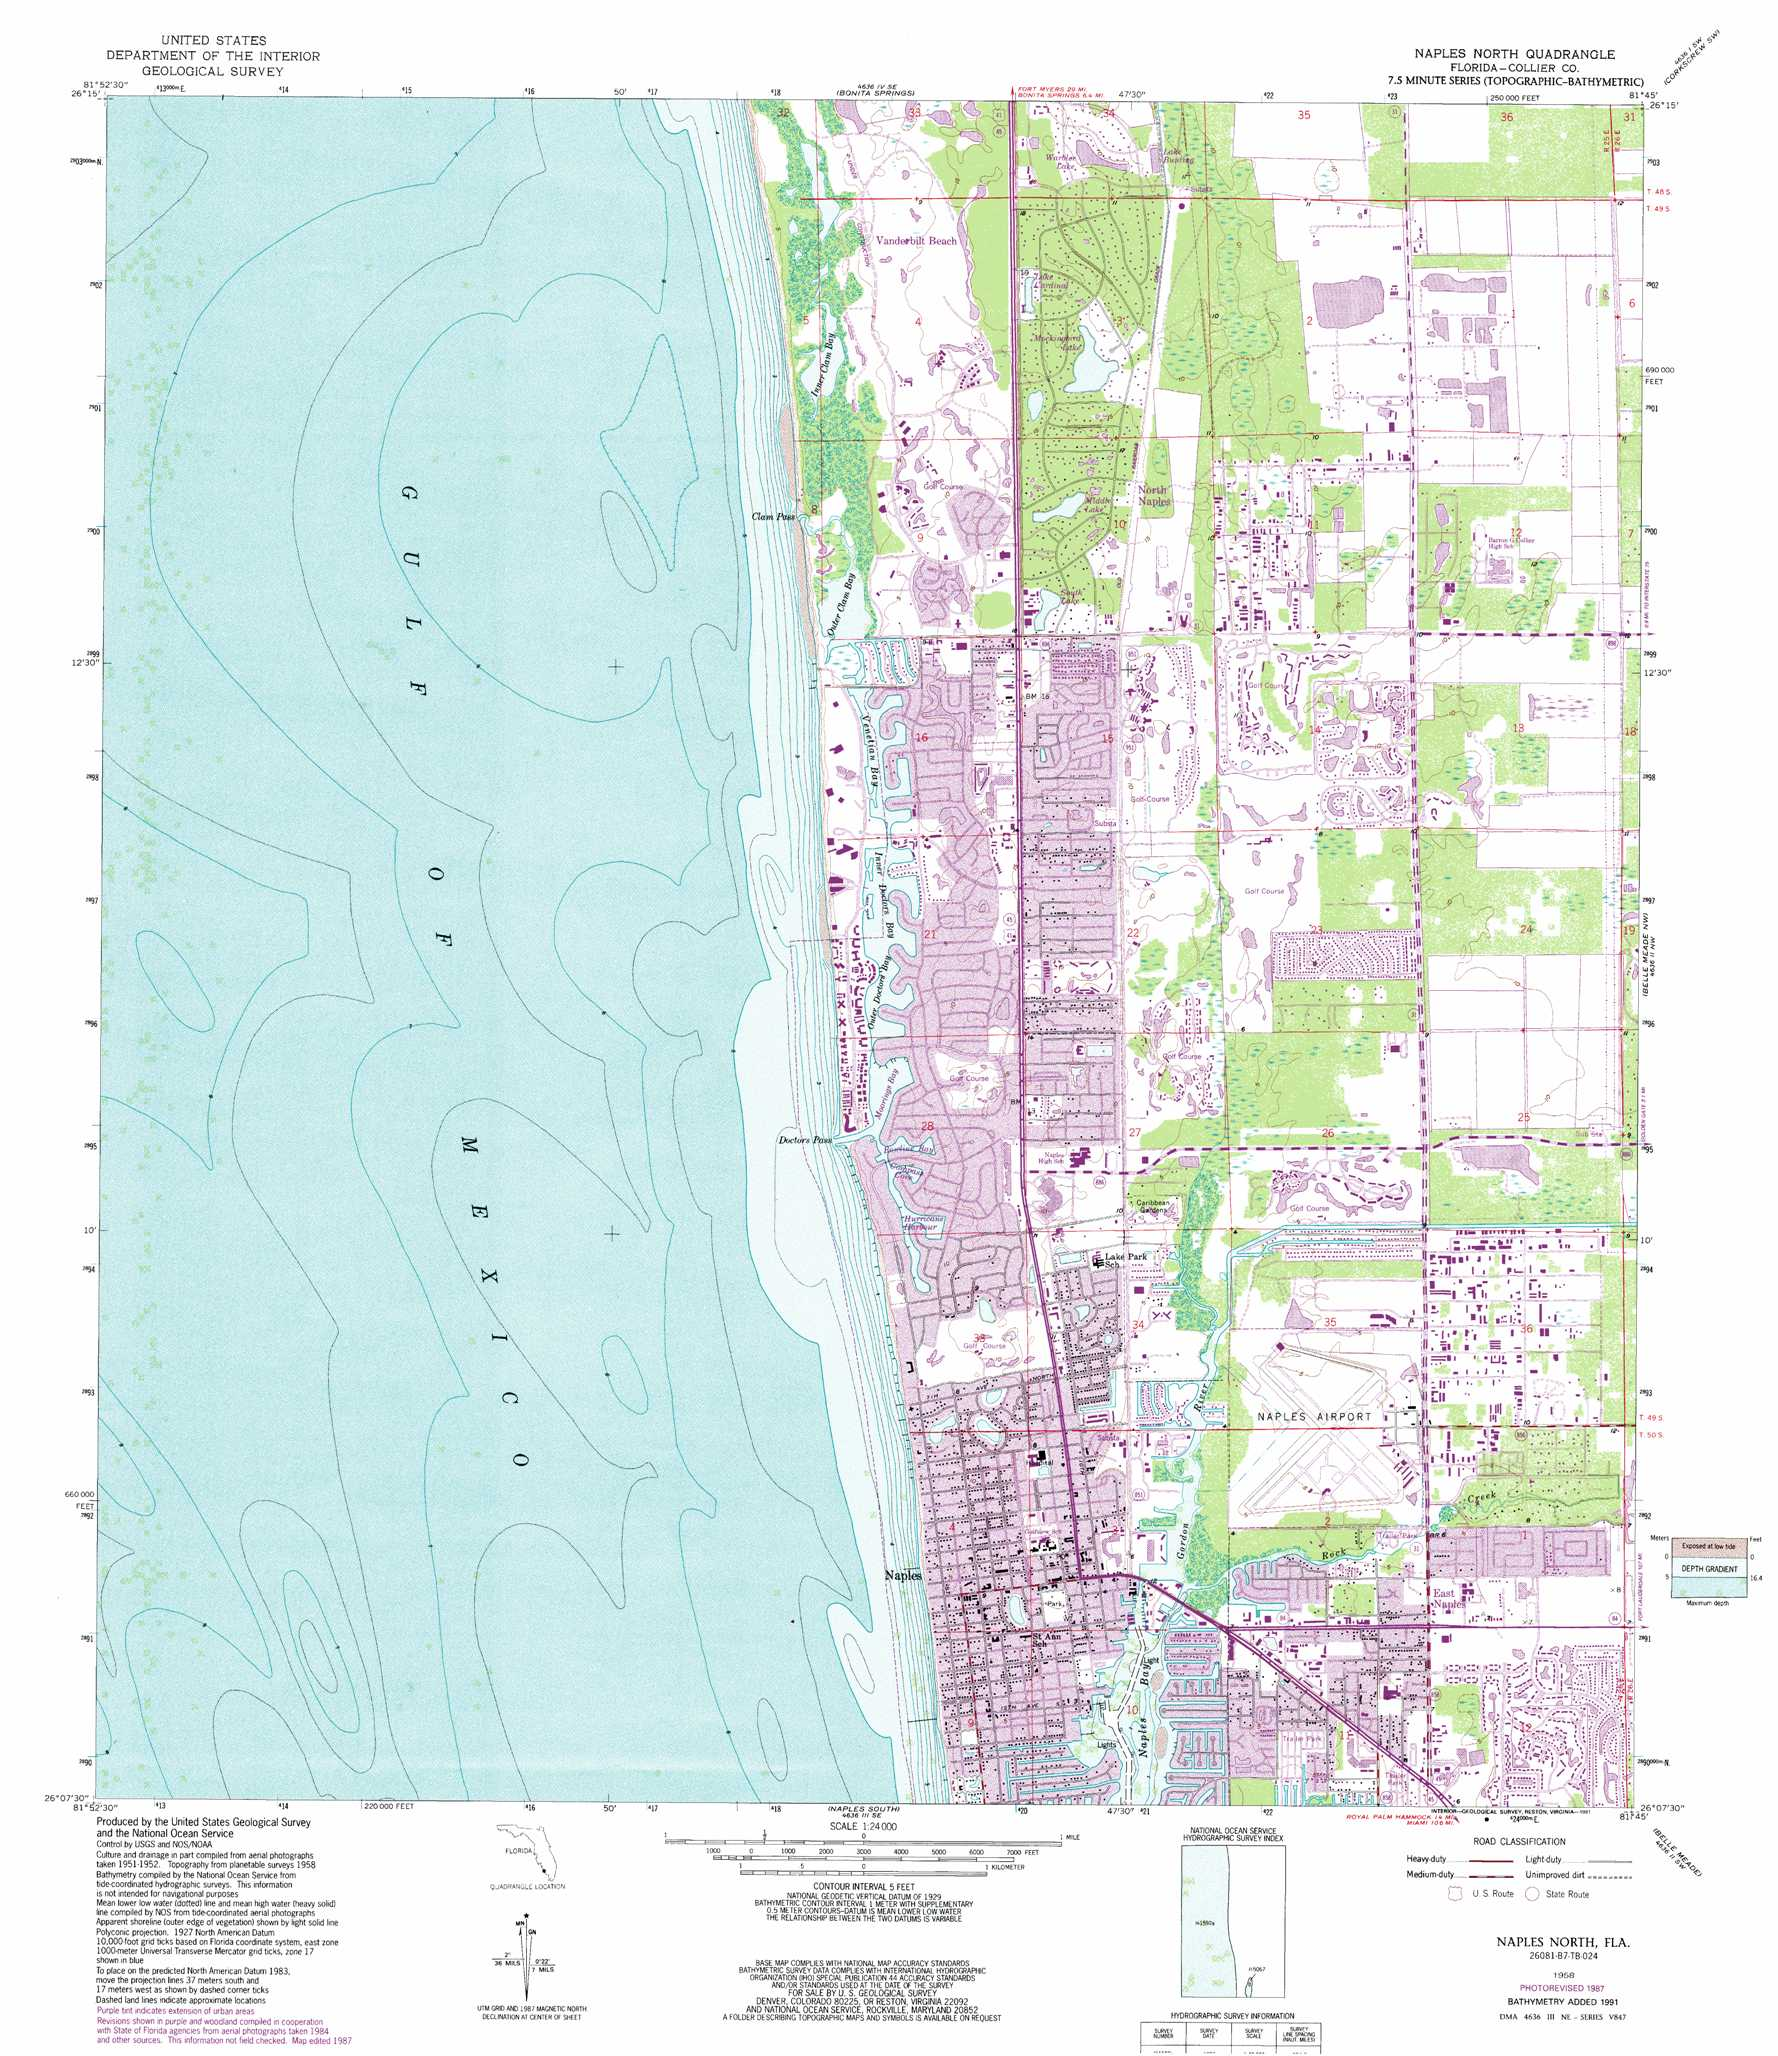 Naples North topographic map, FL - USGS Topo Quad 26081b7